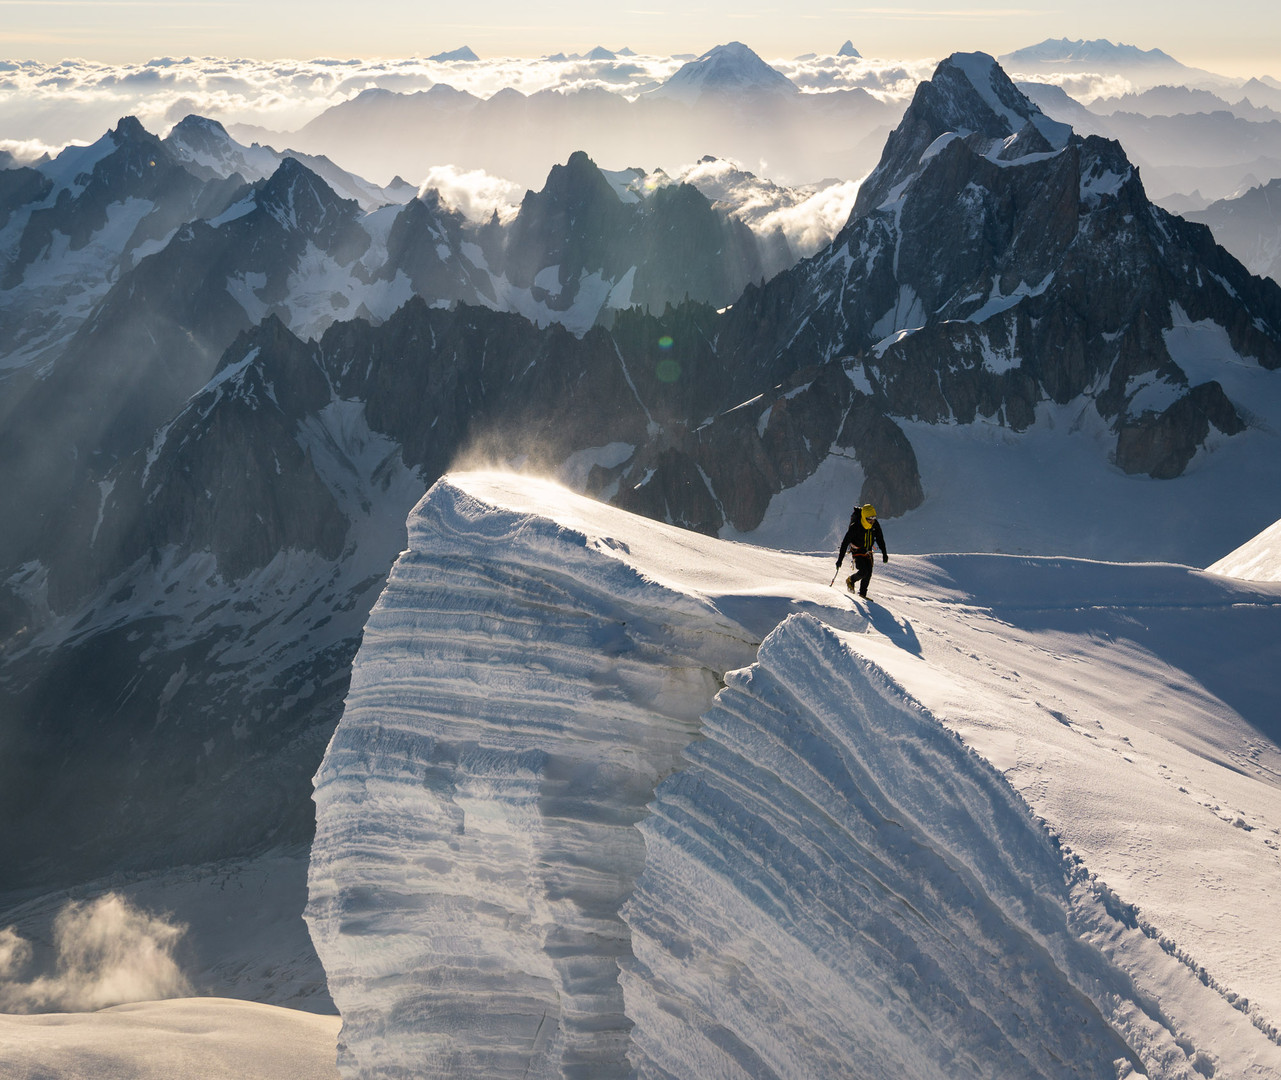 Adrien facing Giants from Mont Blanc du Tacul